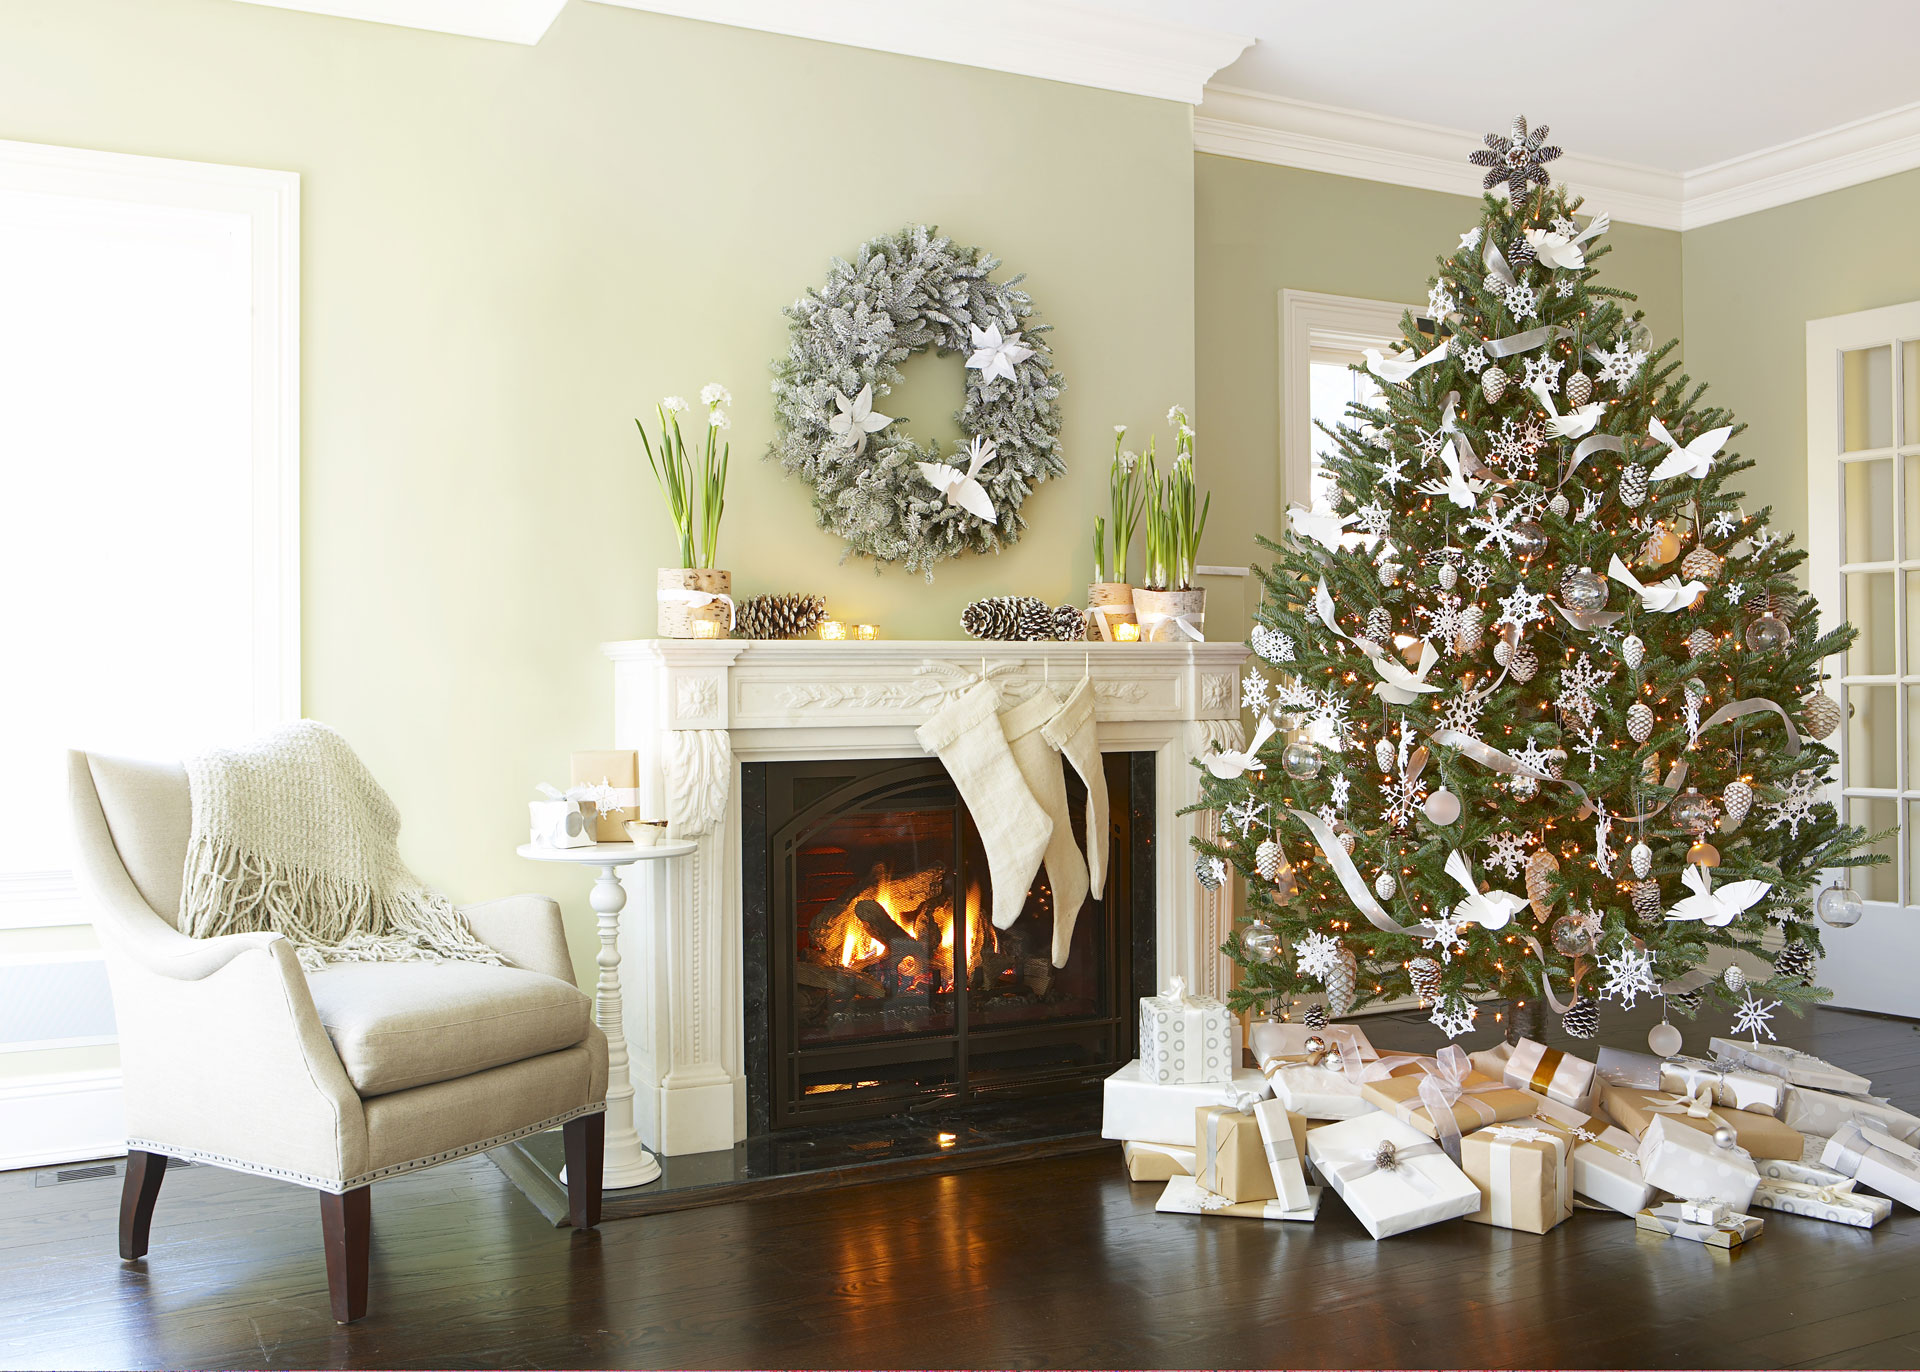 house easy ways to make your home smell like christmas - What Christmas Tree Smells The Best